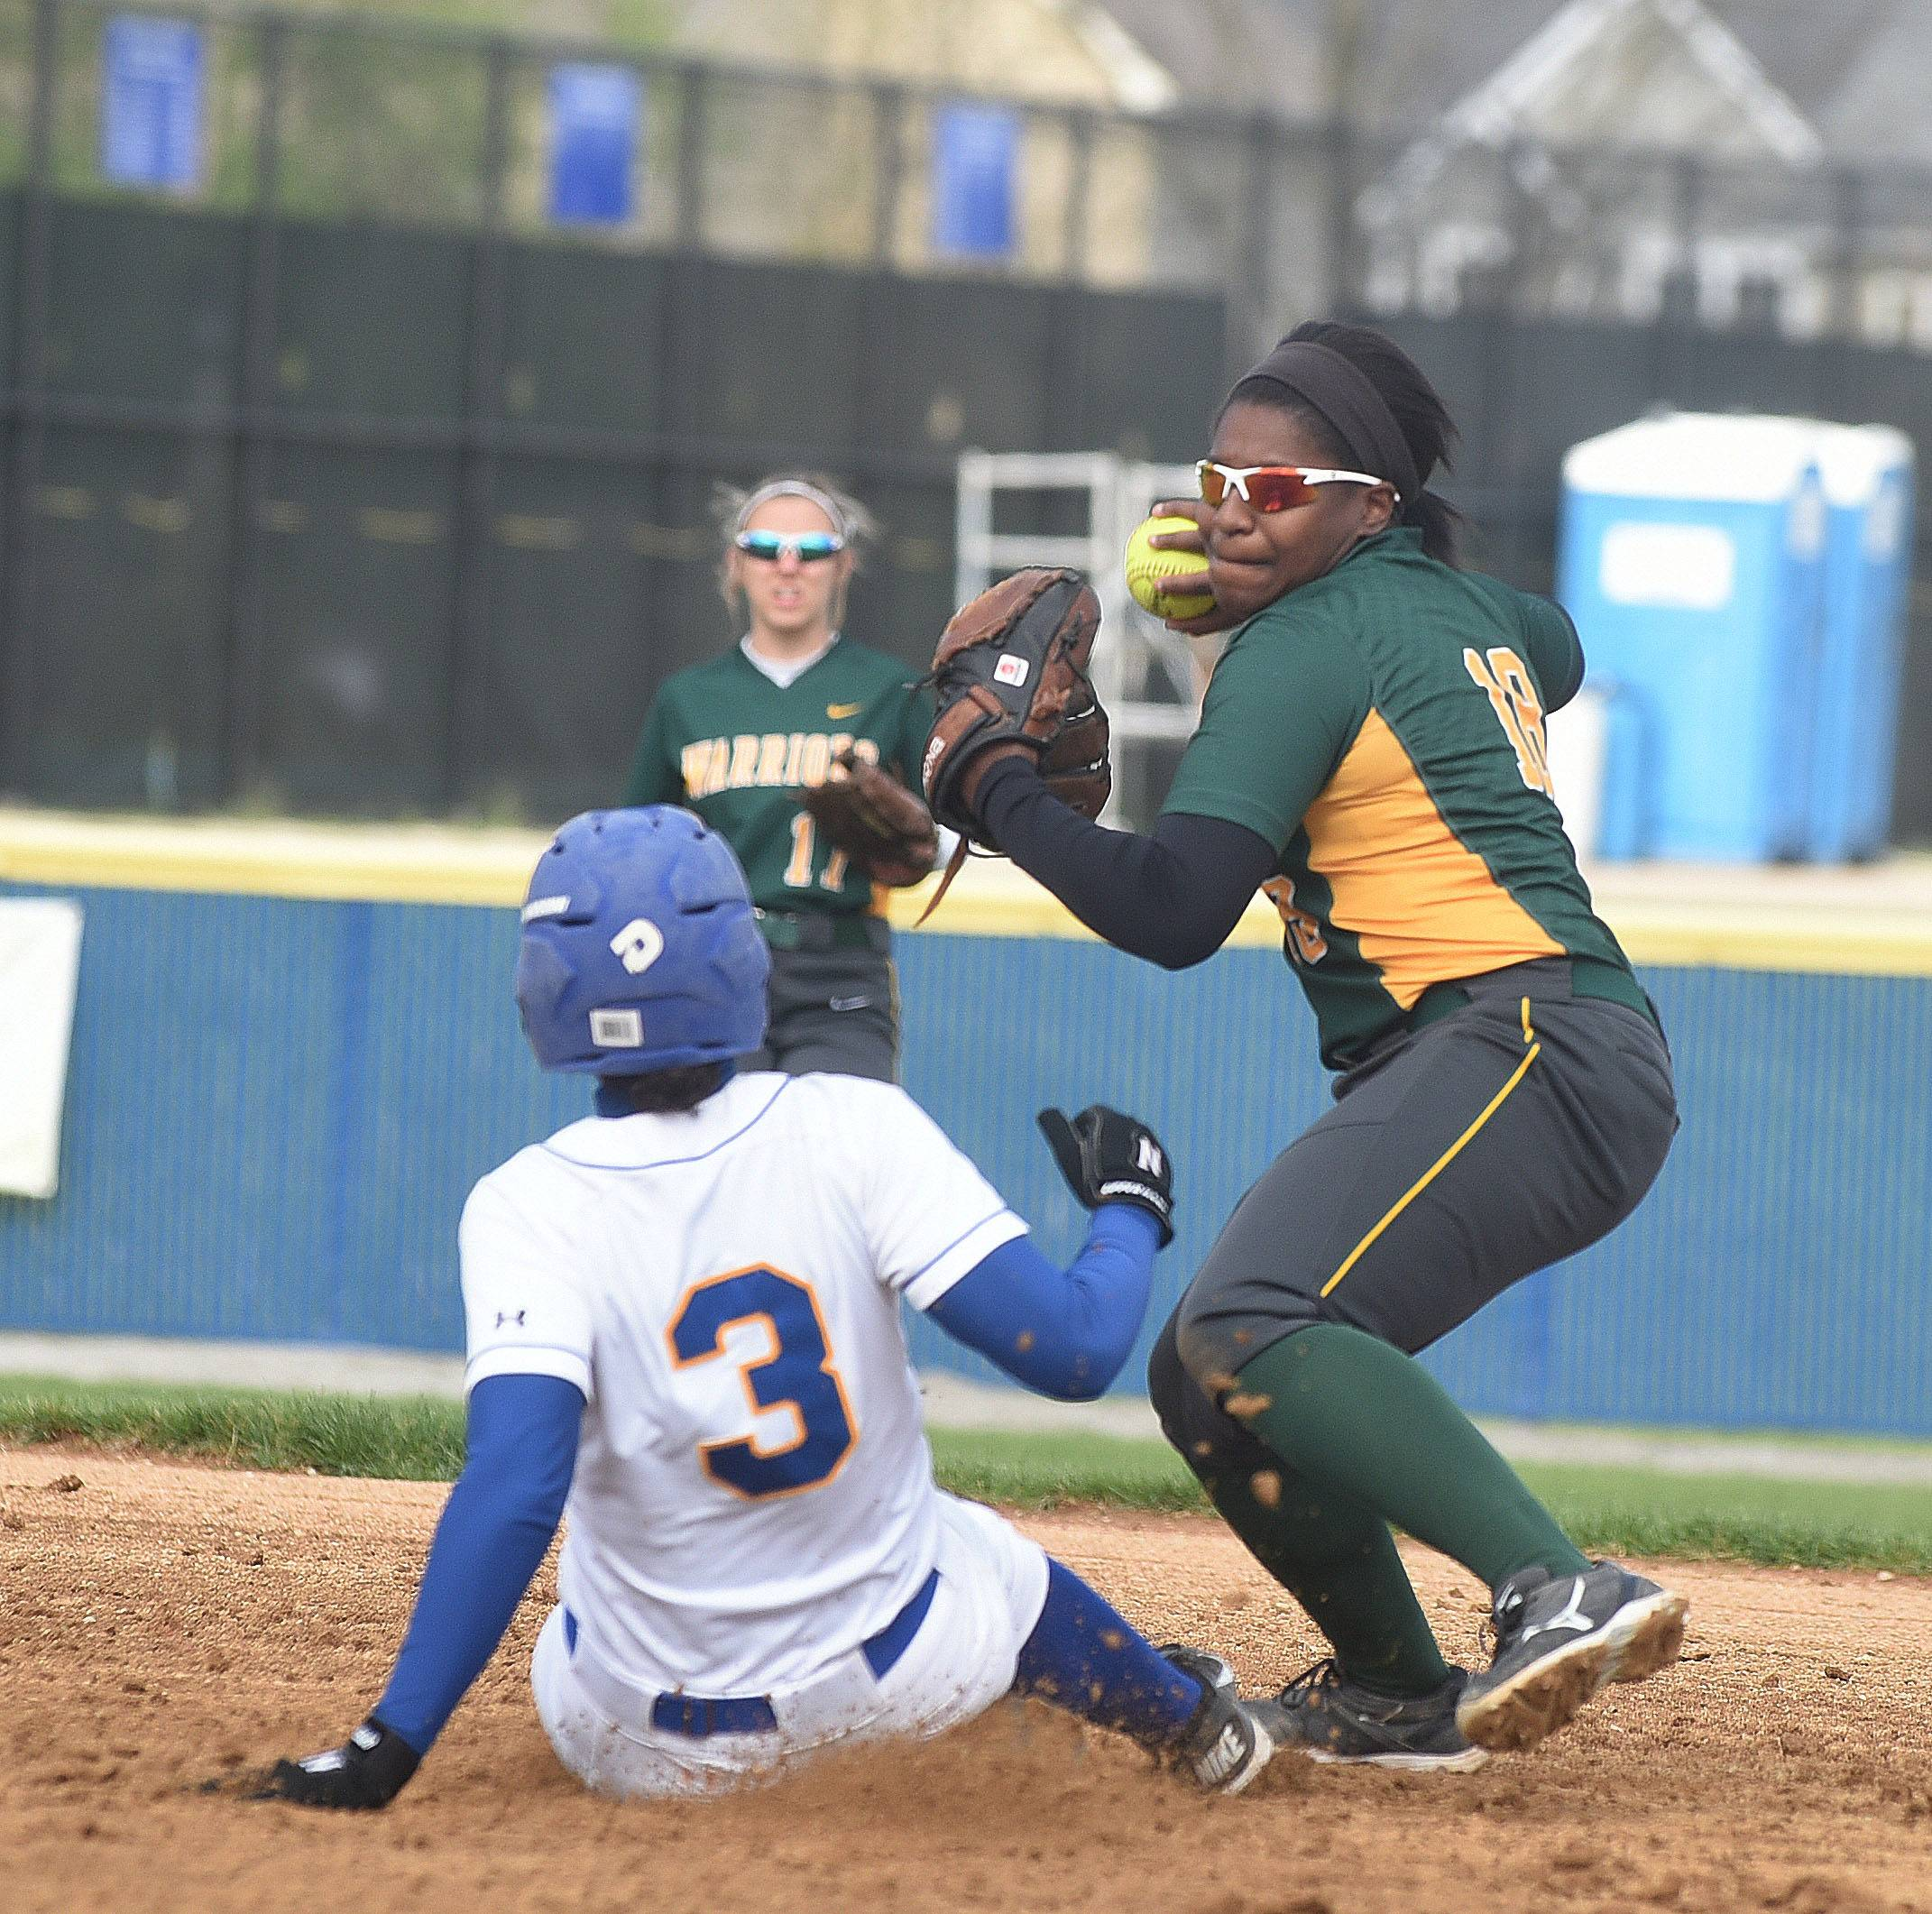 Alleigha Burau of Wheaton North slides into second as Kiara Bryant of Waubonsie makes the throw to first during the Waubonsie Valley at Wheaton North softball game Friday.